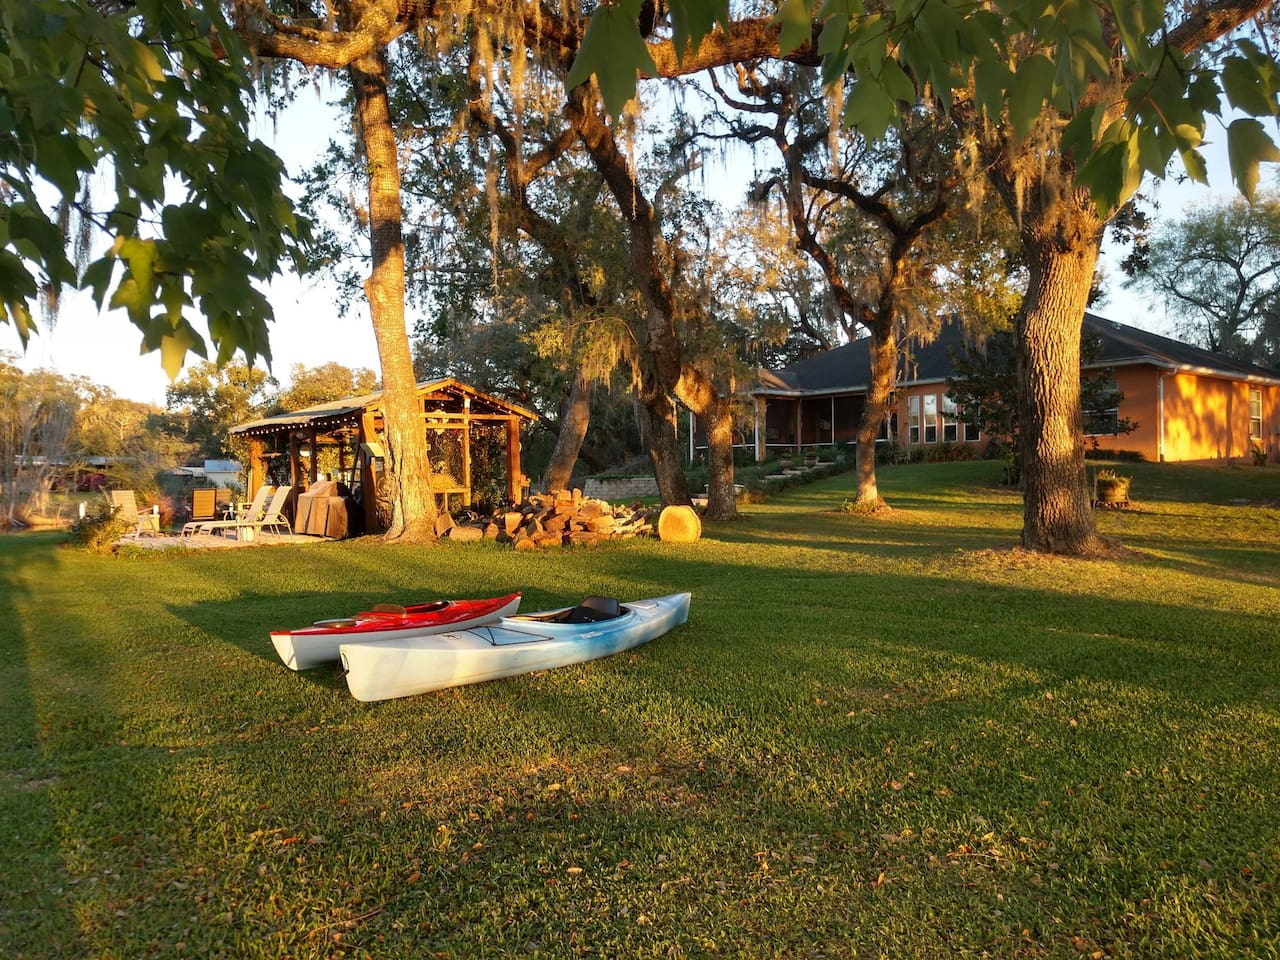 BBQ area with fire pit. Backyard with kayaks.